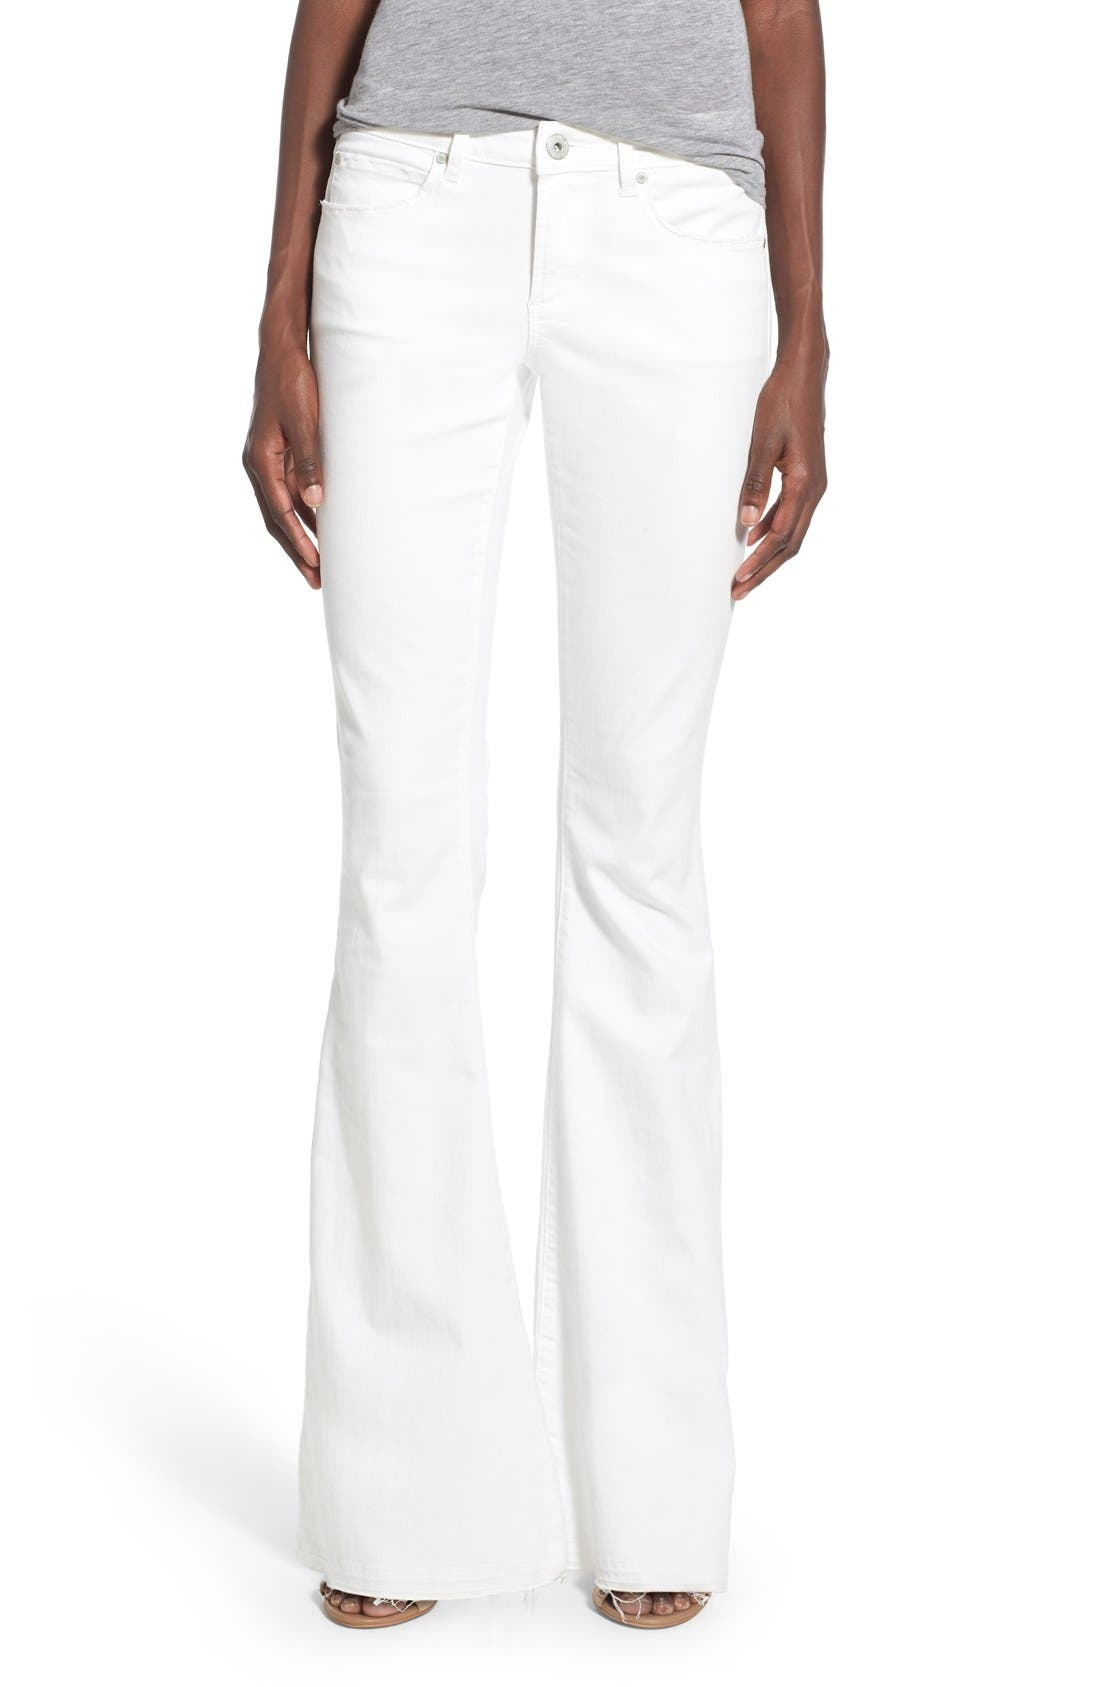 ARTICLES OF SOCIETY 'Faith' Flare Jeans, Main, color, 120